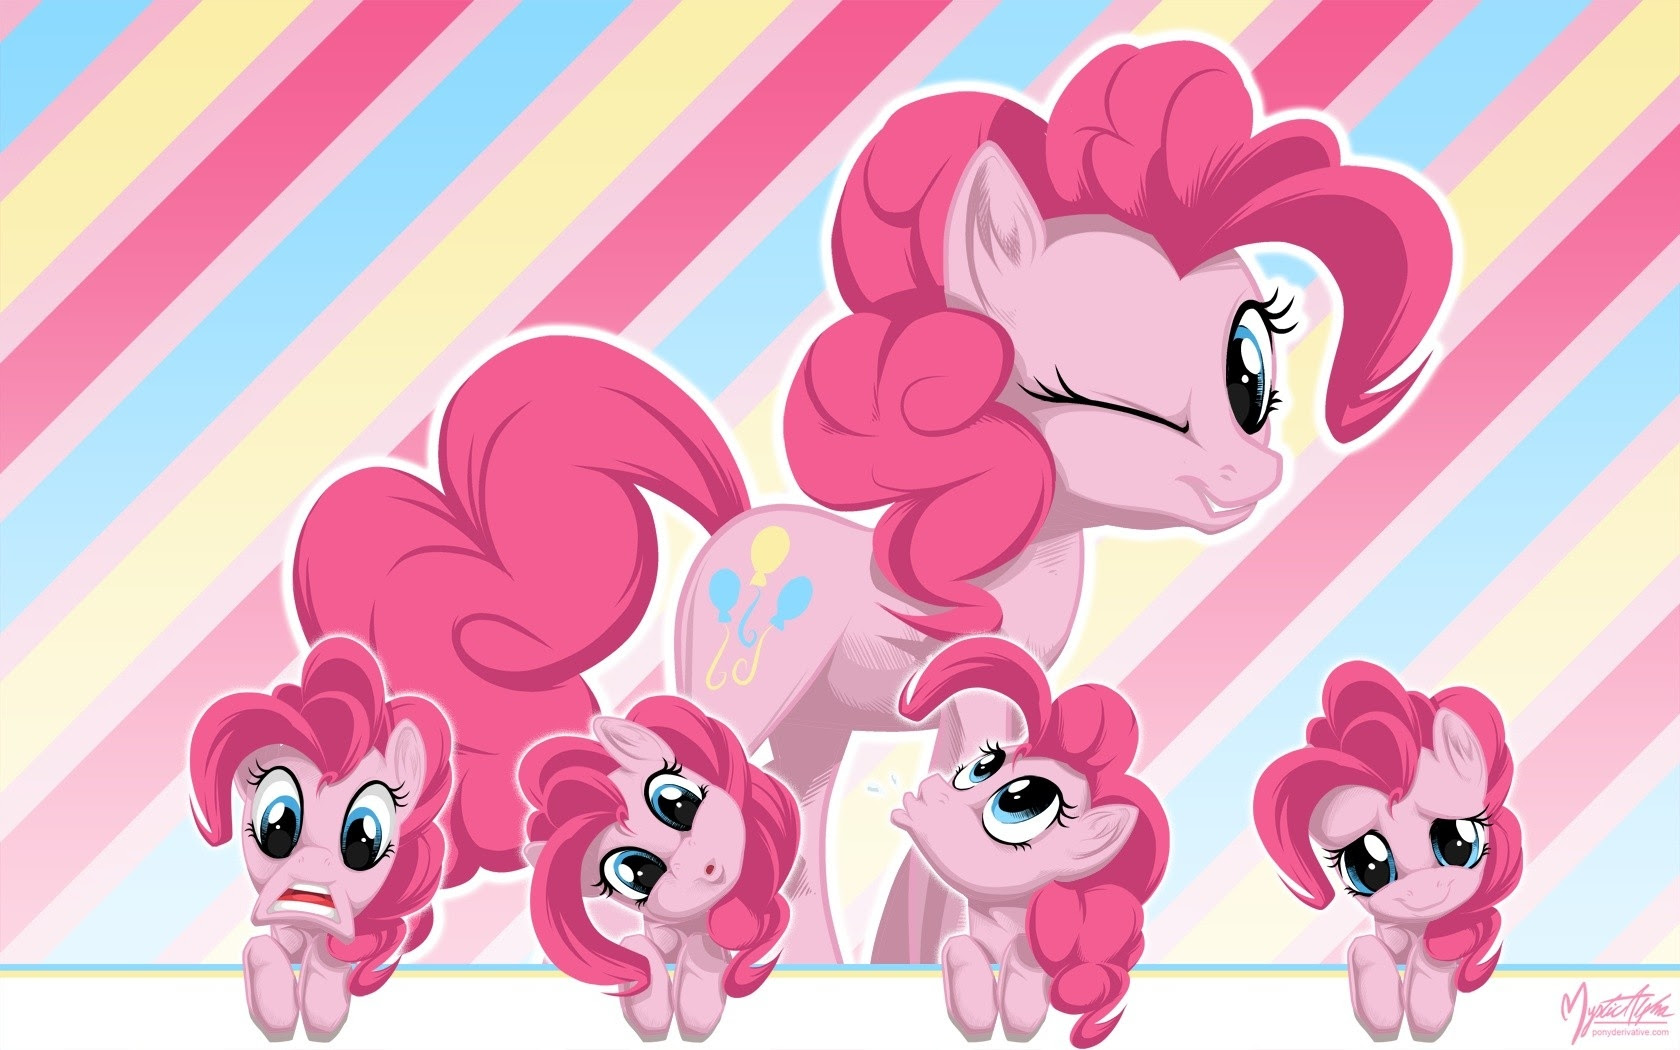 Wall My Little Pony Pinkie Pie Faces 1680x1050 Wallpaper High